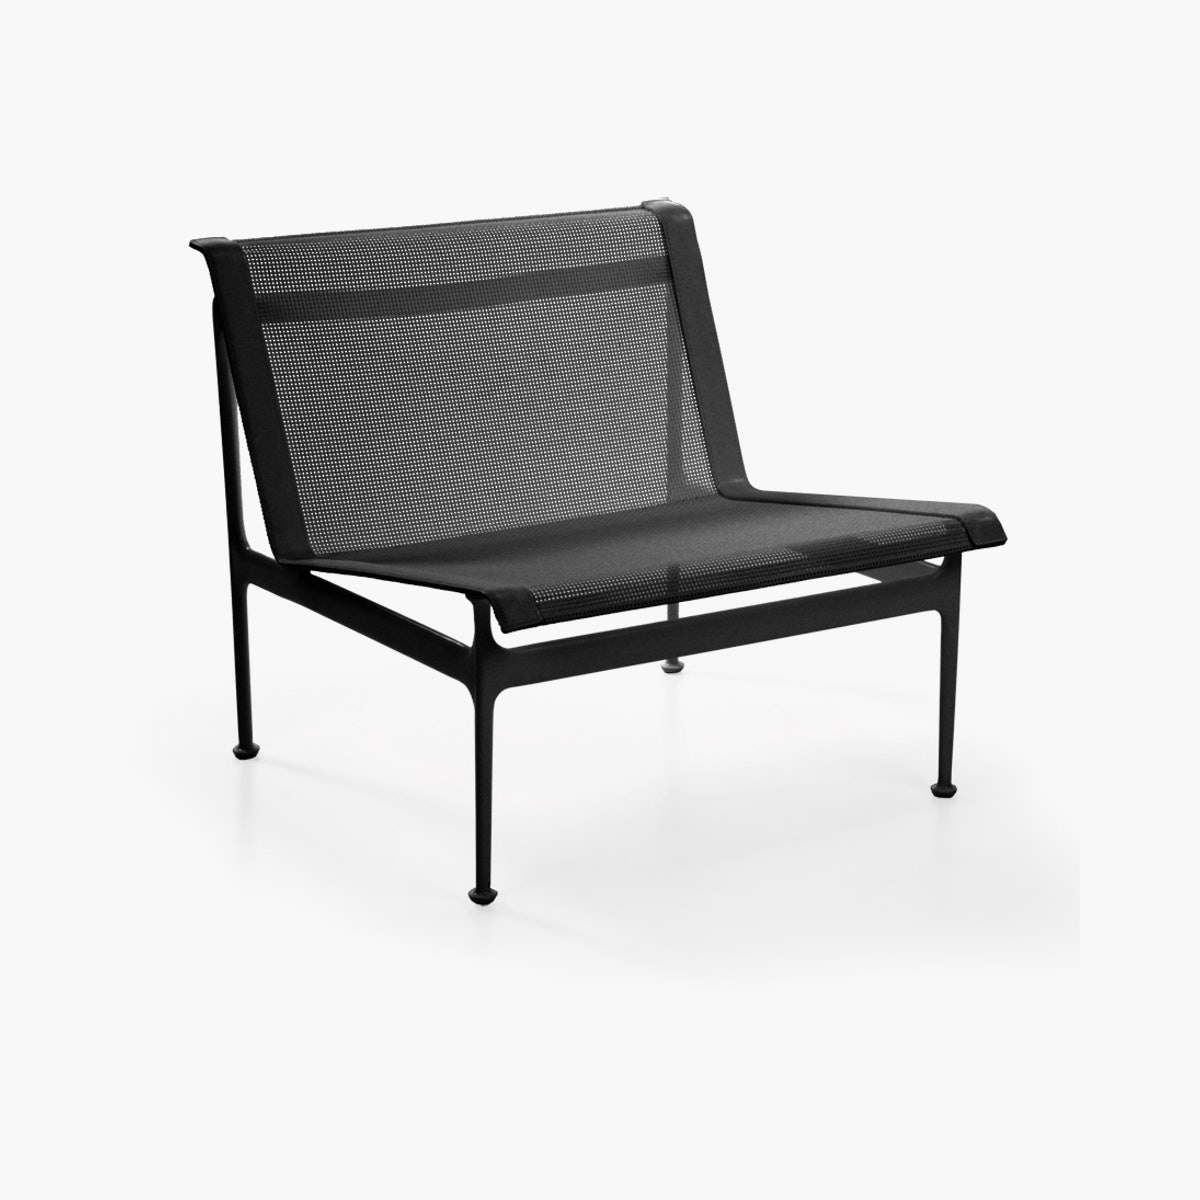 Swell Single Seat Club Chair